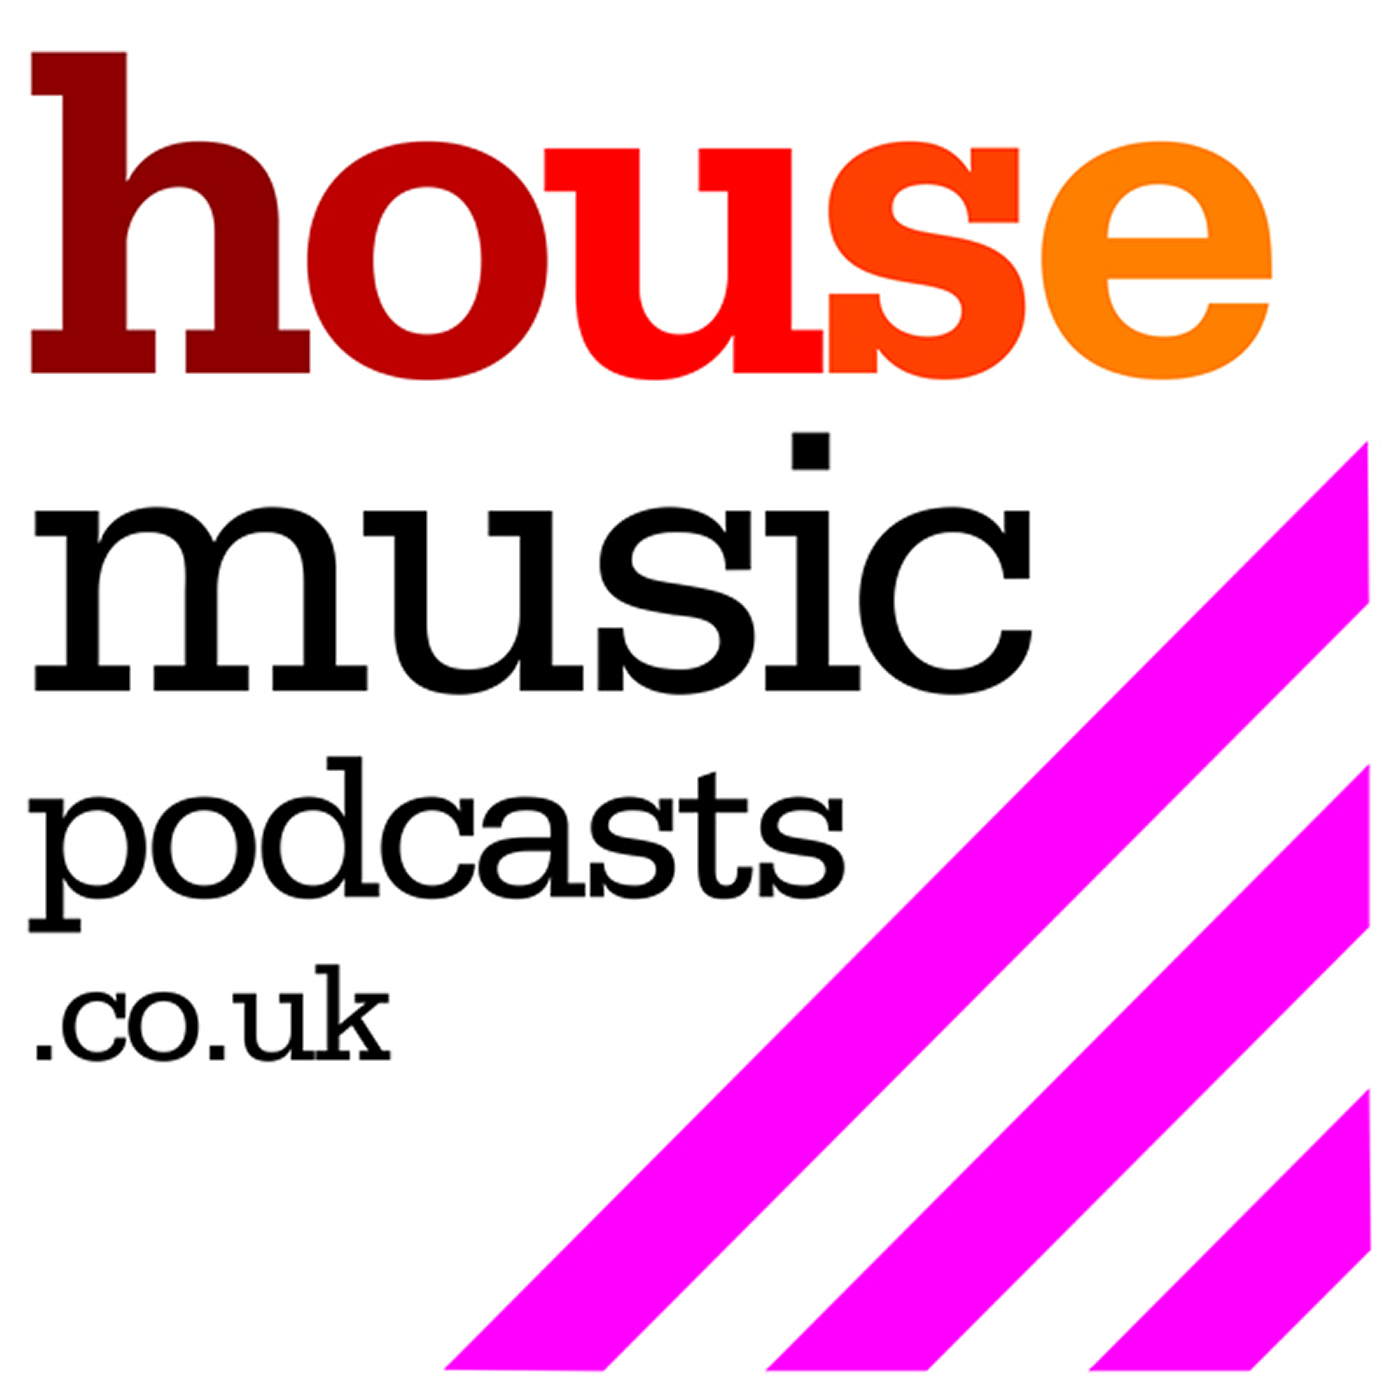 Bassmonkeys – House Music Podcasts